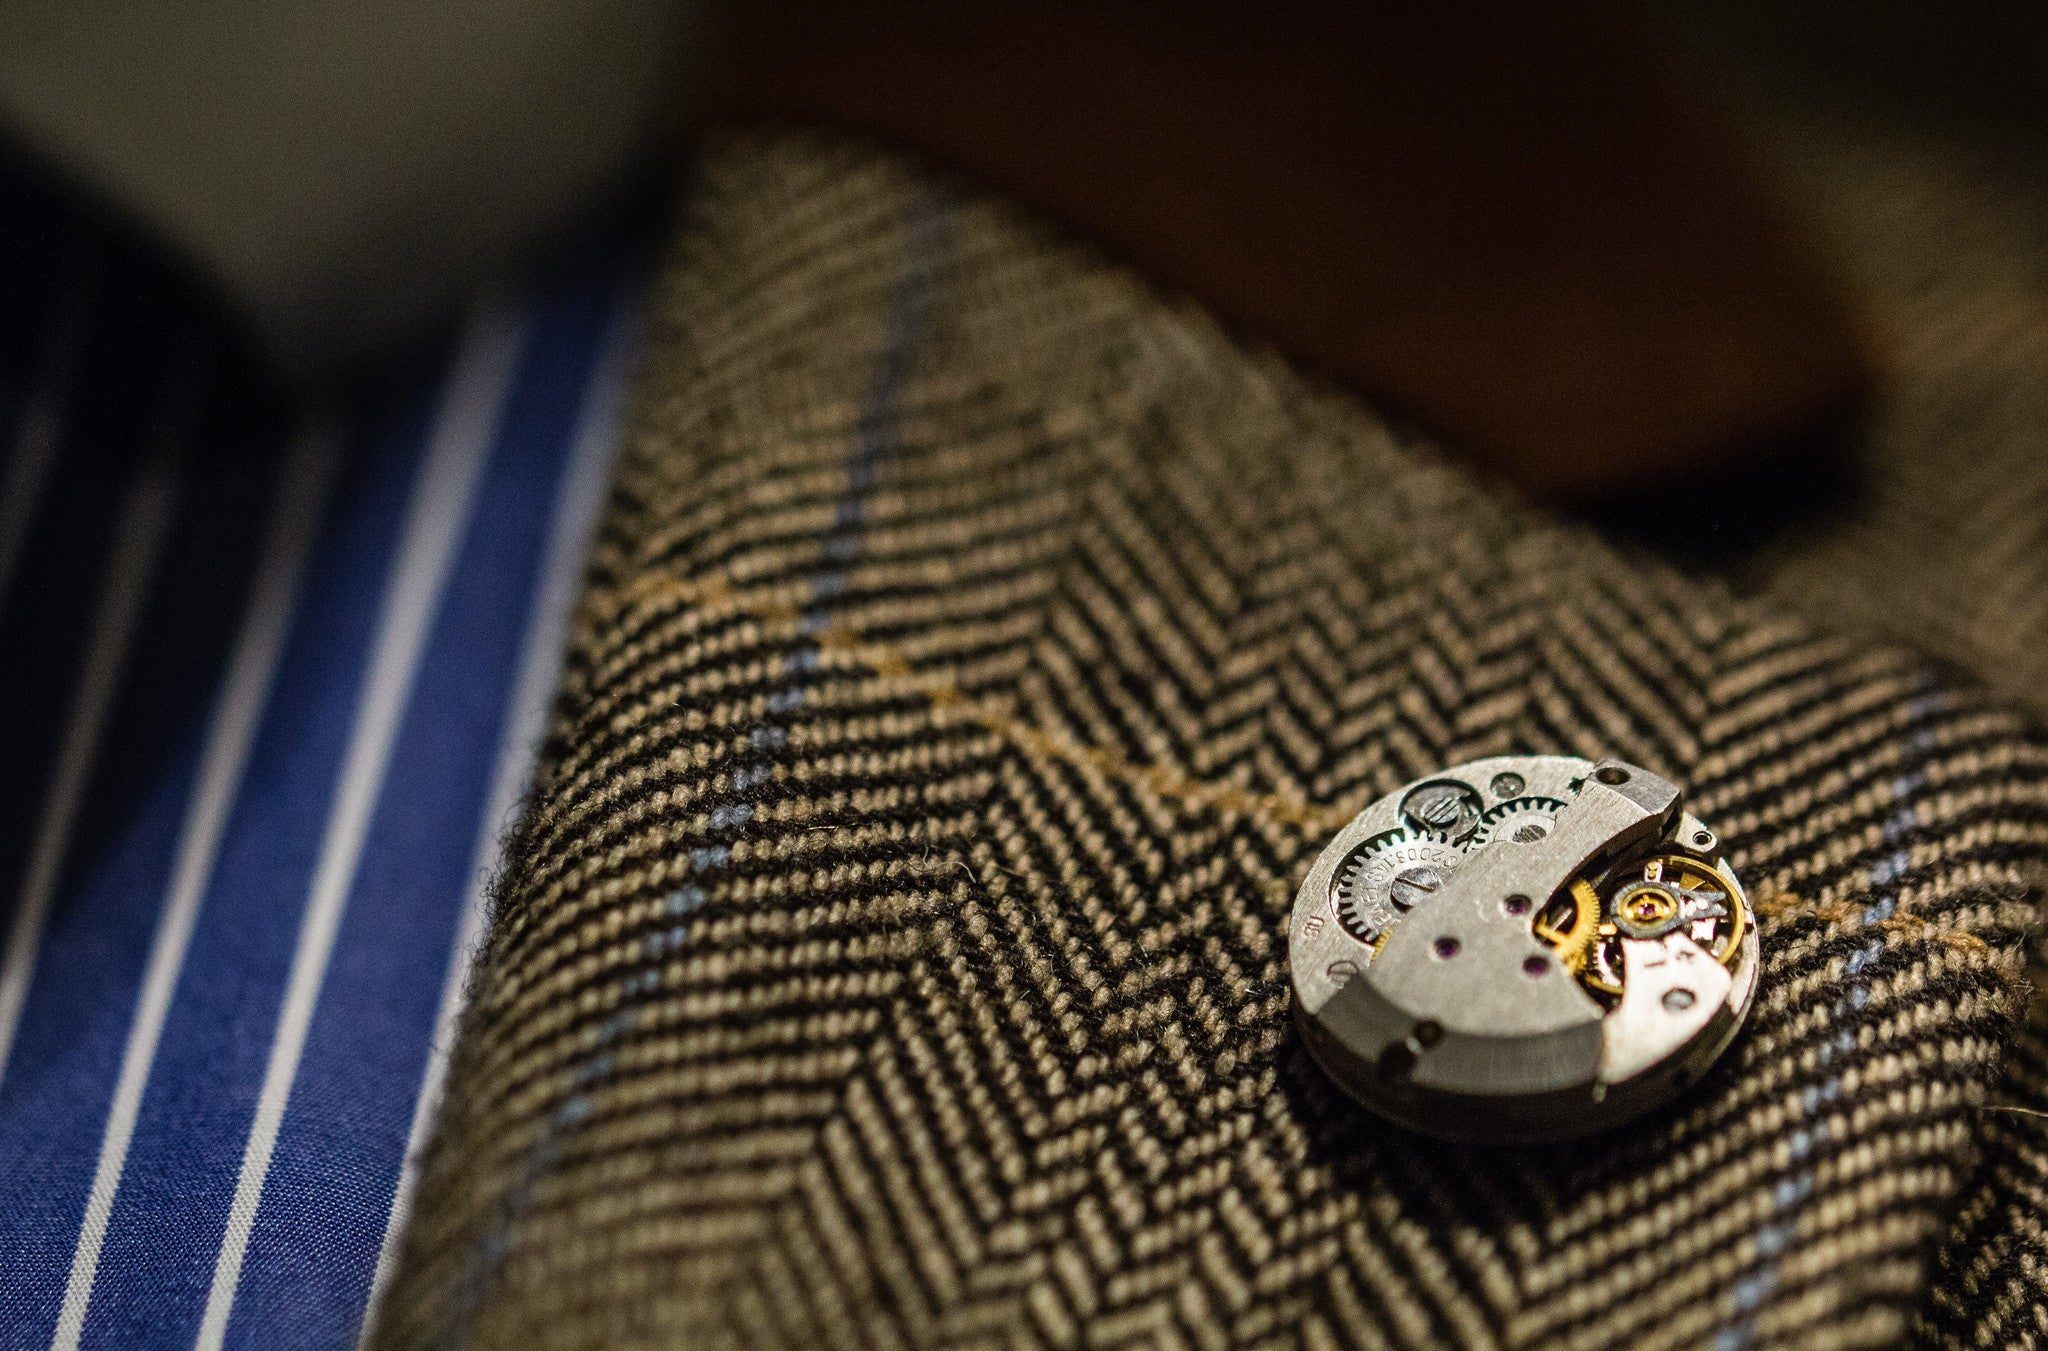 Round Levelled Watch Movement Lapel Pin